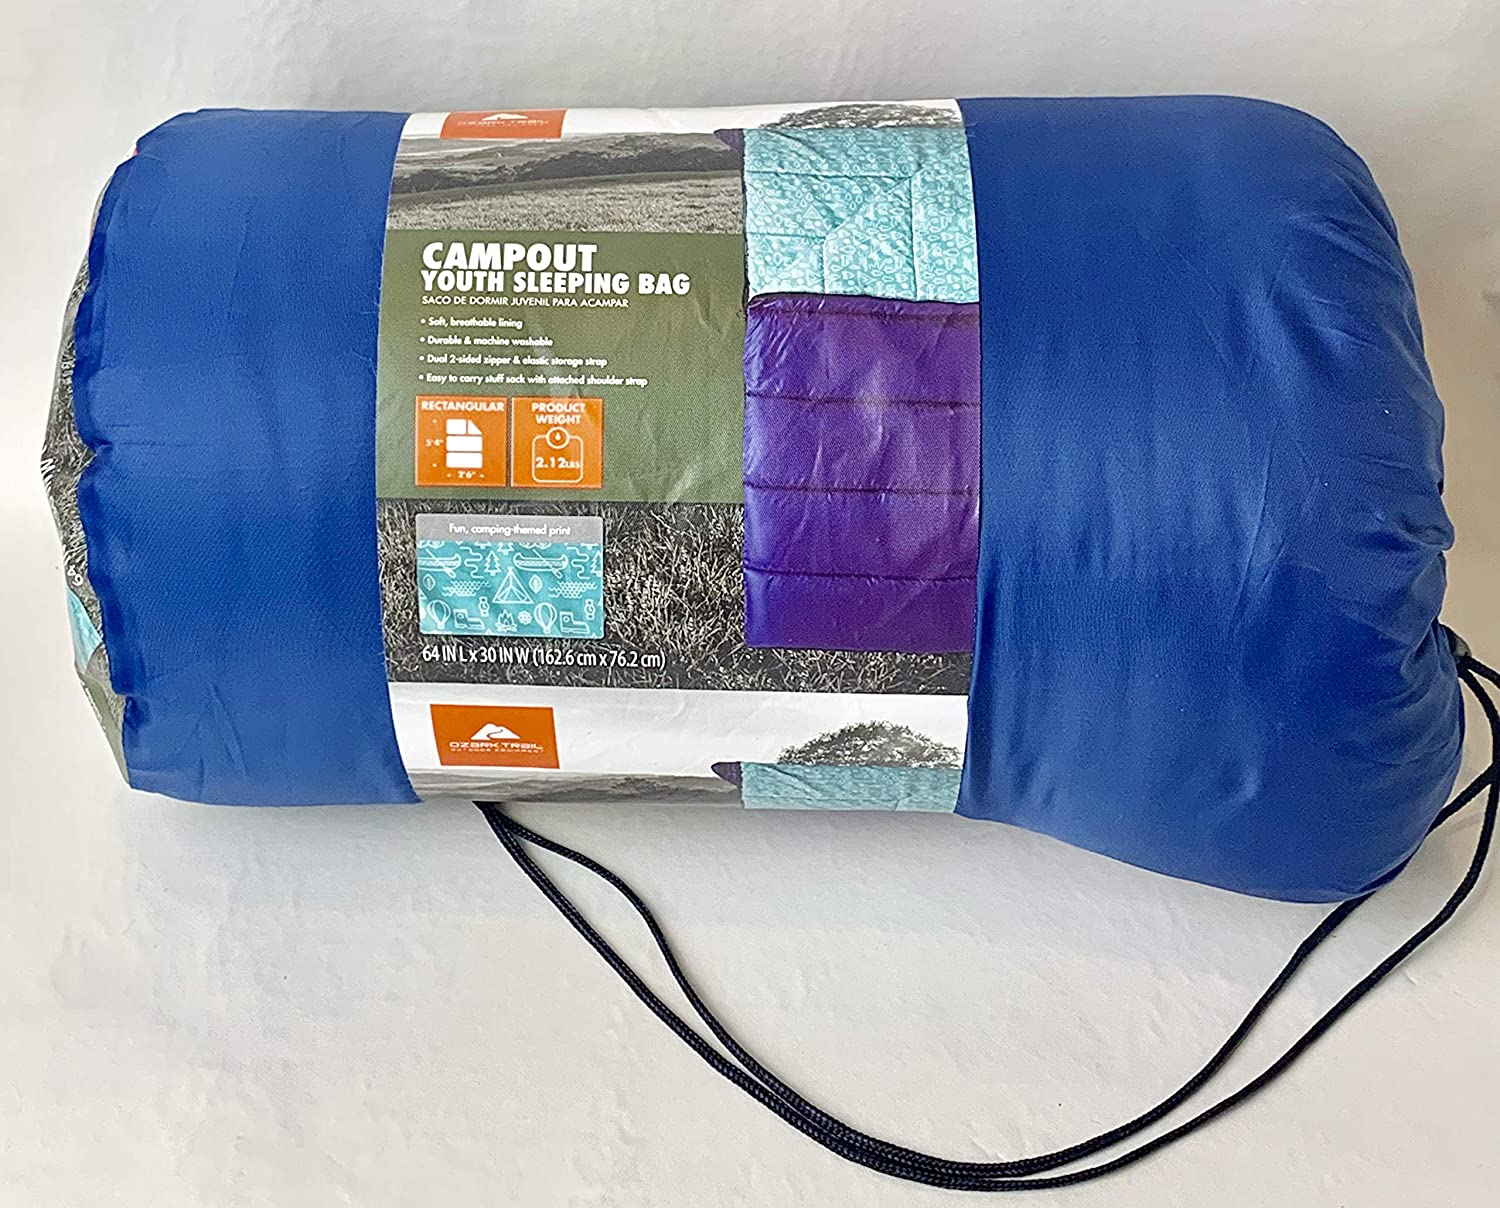 Amazon.com : OZARK-Trail Youth Sleeping Bag Camping Indoor Outoor Traveling - campout Design : Sports & Outdoors